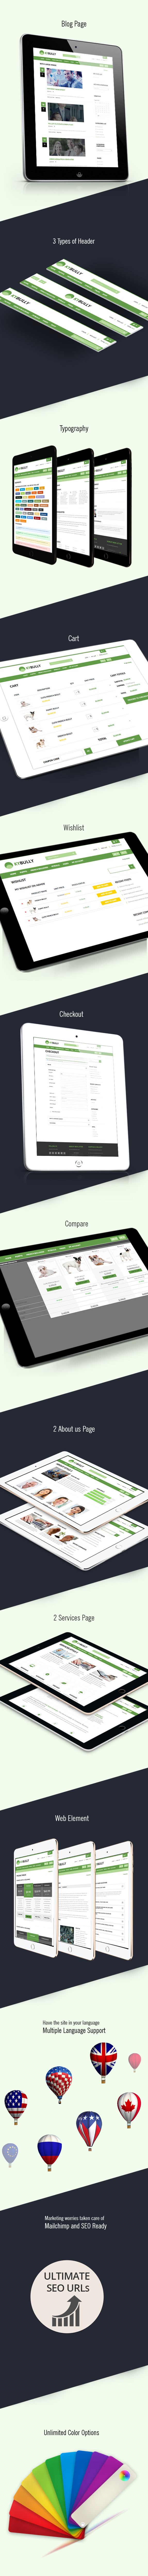 Complete ecommerce store solution for joomla